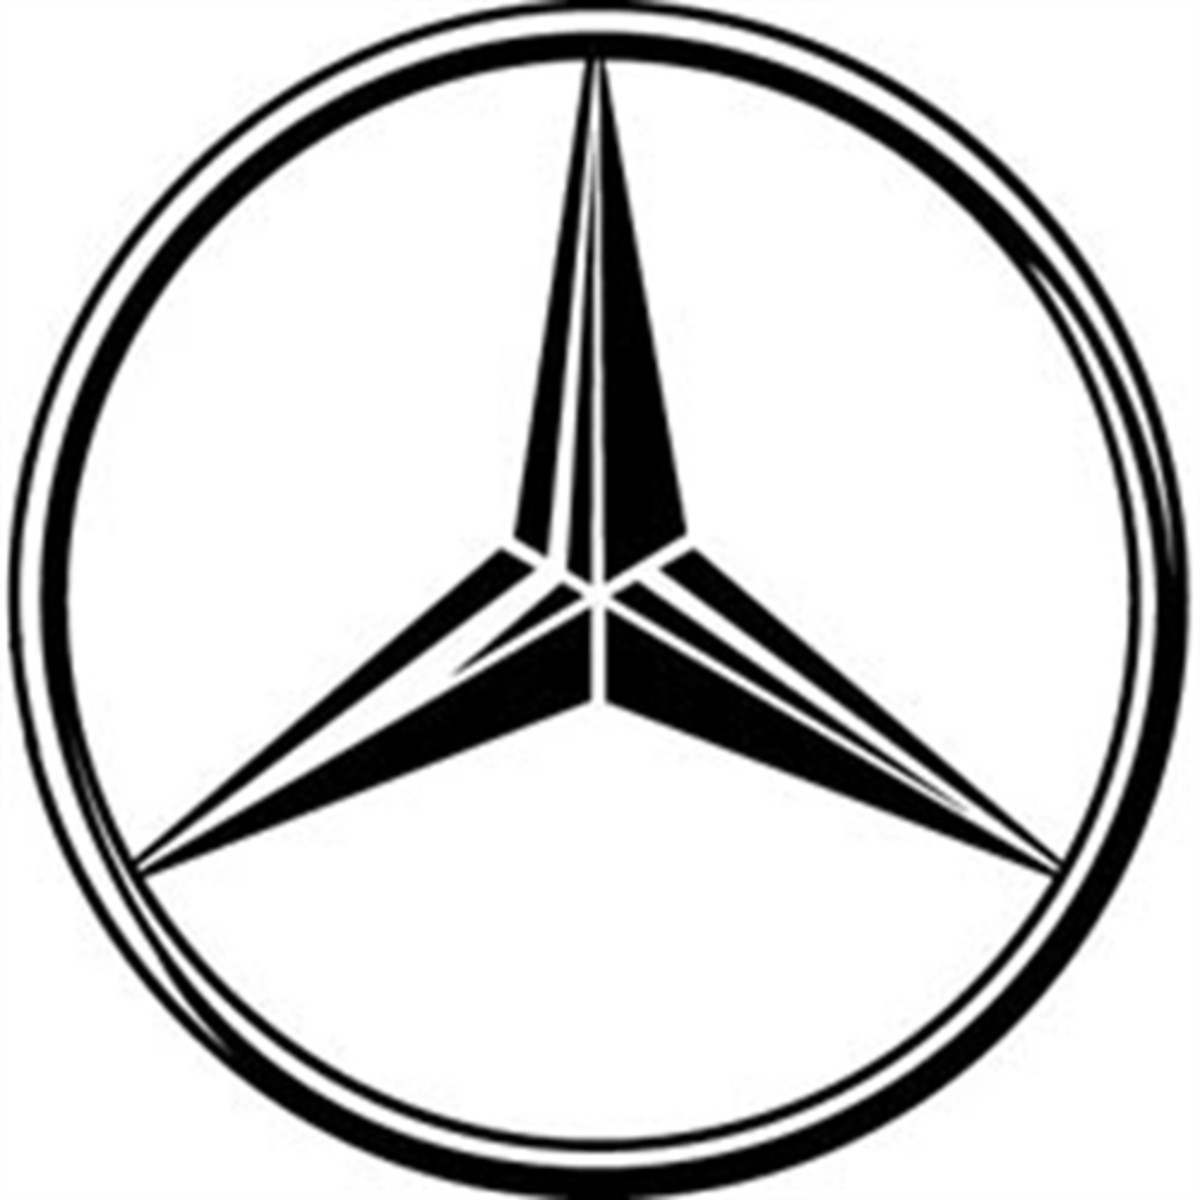 The Mercedes Benz logo